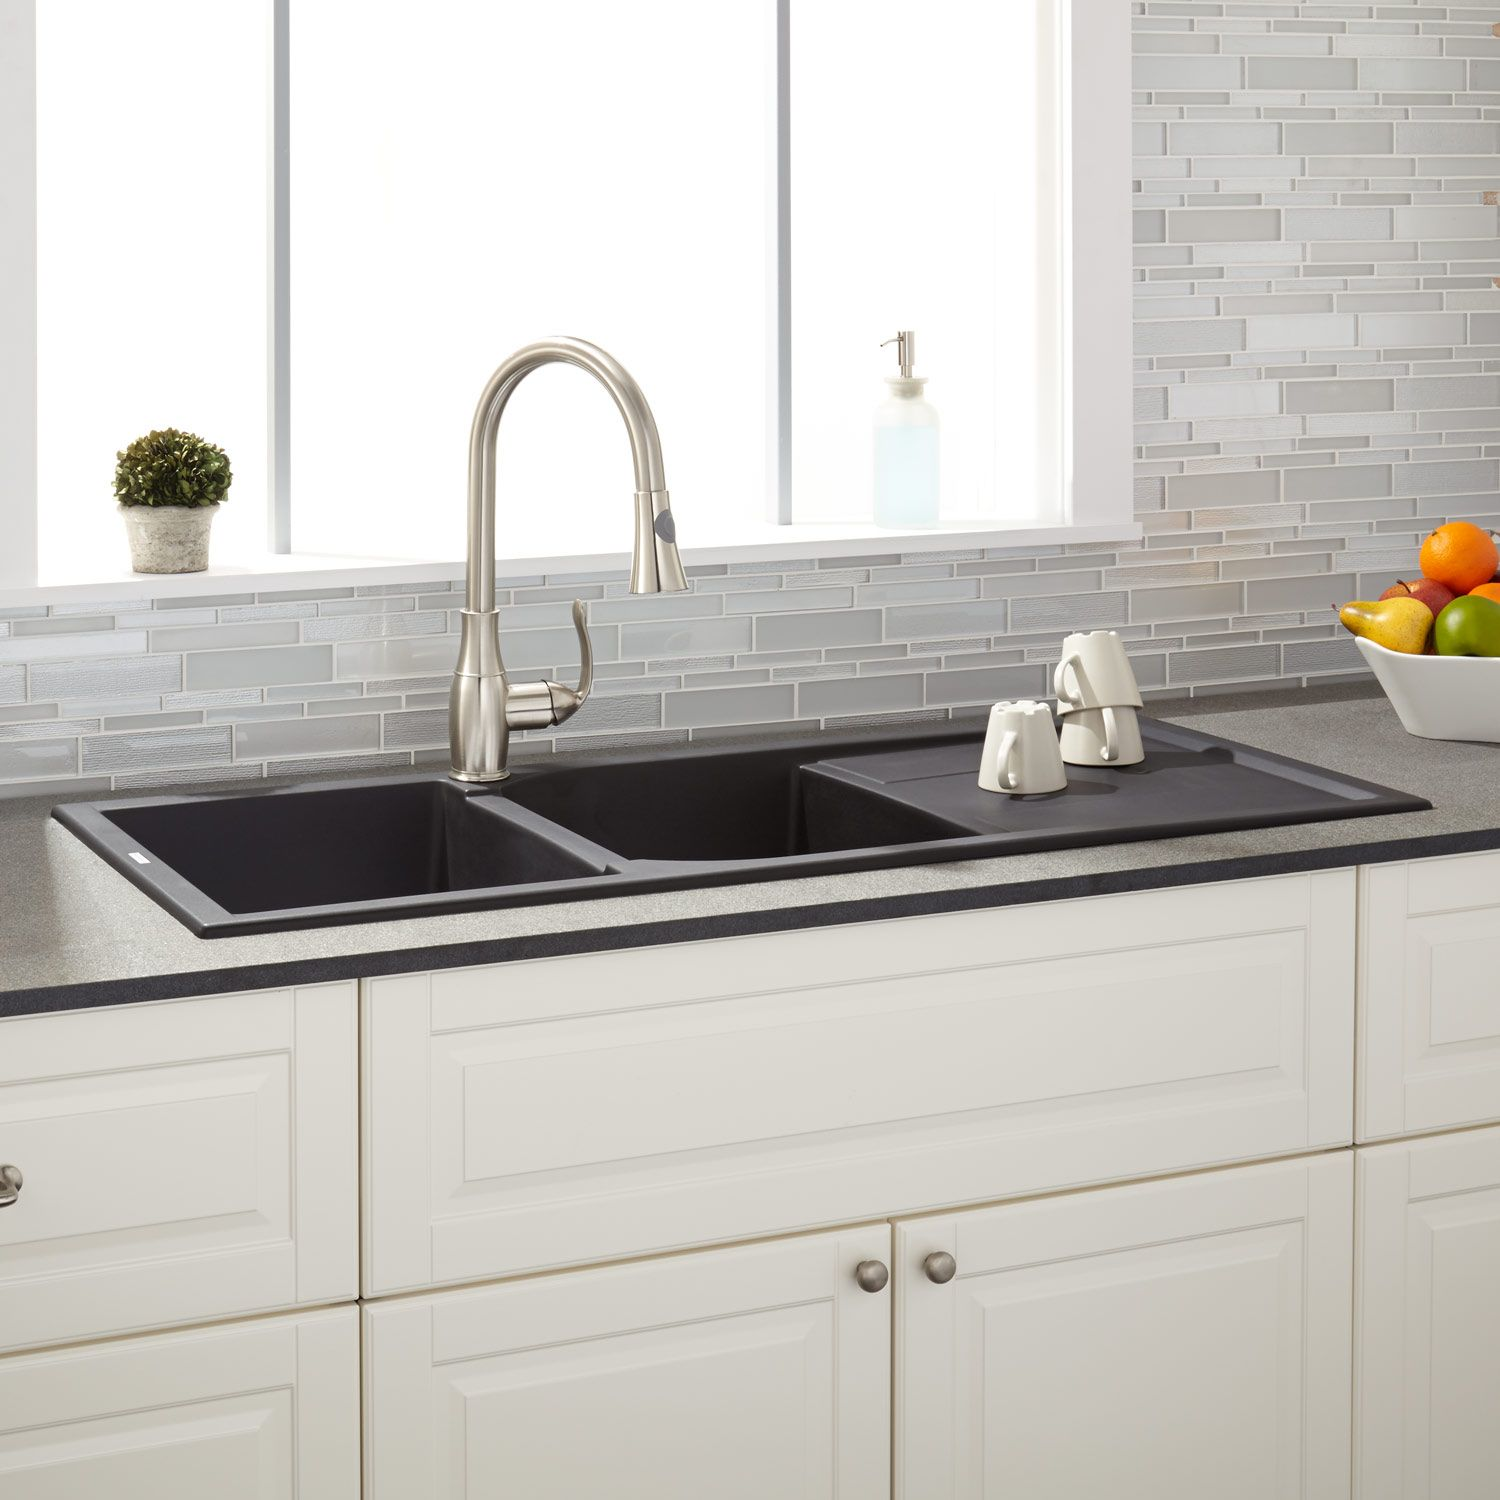 46 Quot Owensboro Double Bowl Drop In Granite Composite Sink